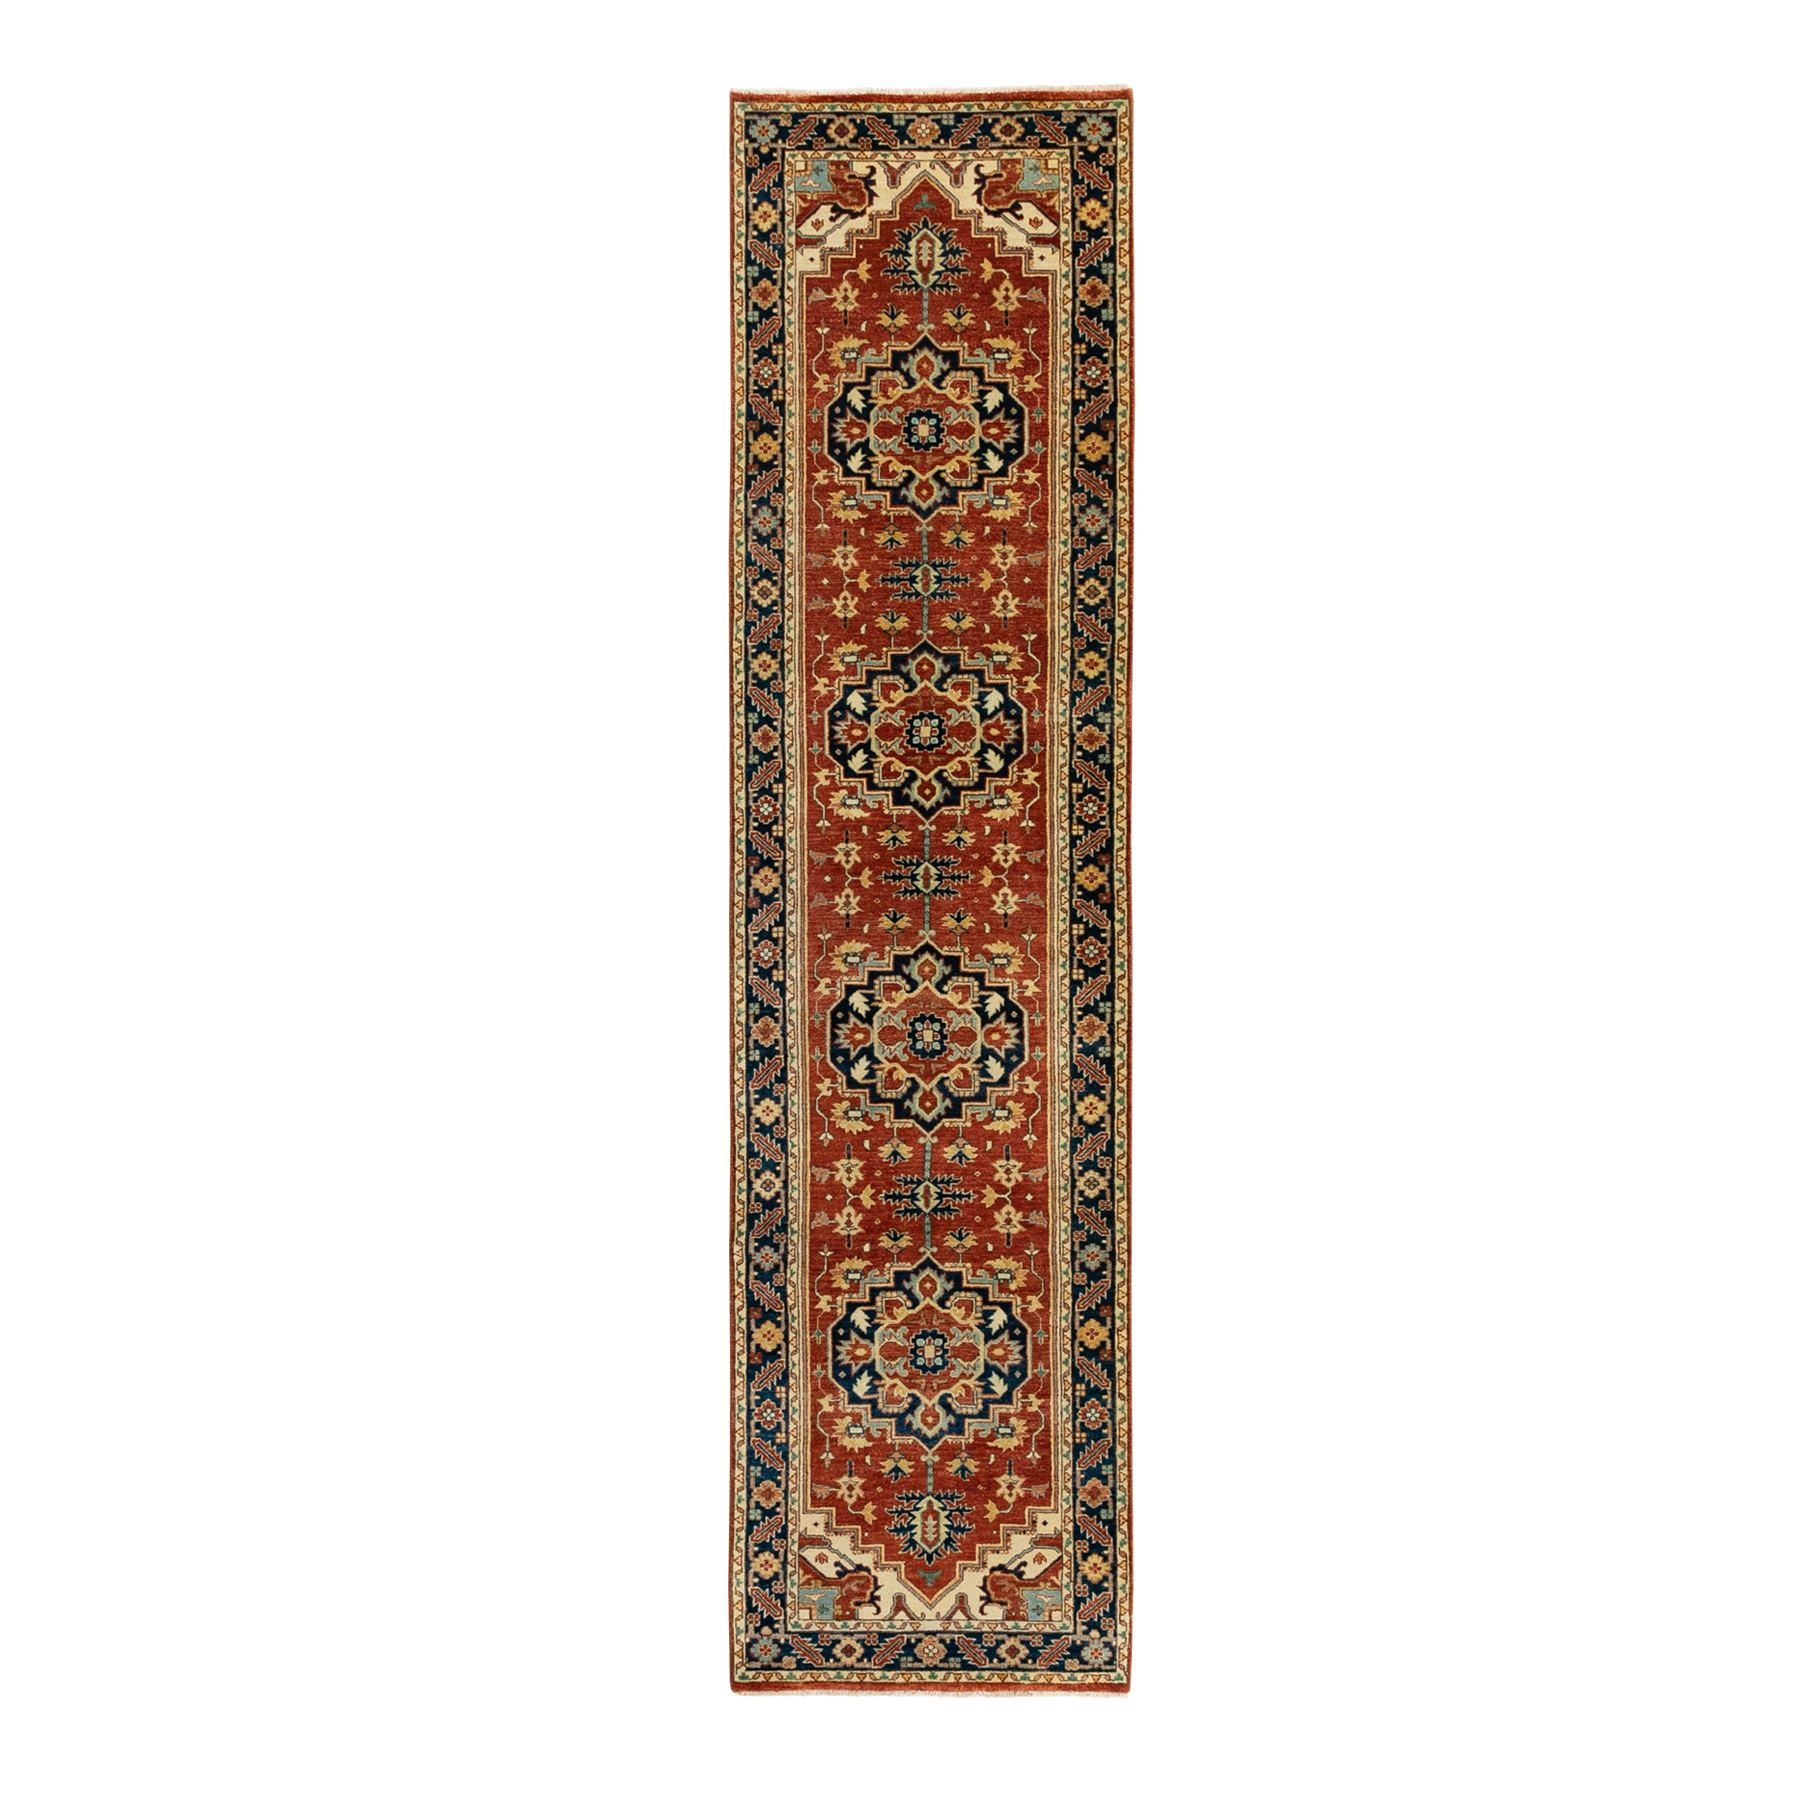 Heriz-Hand-Knotted-Rug-310040